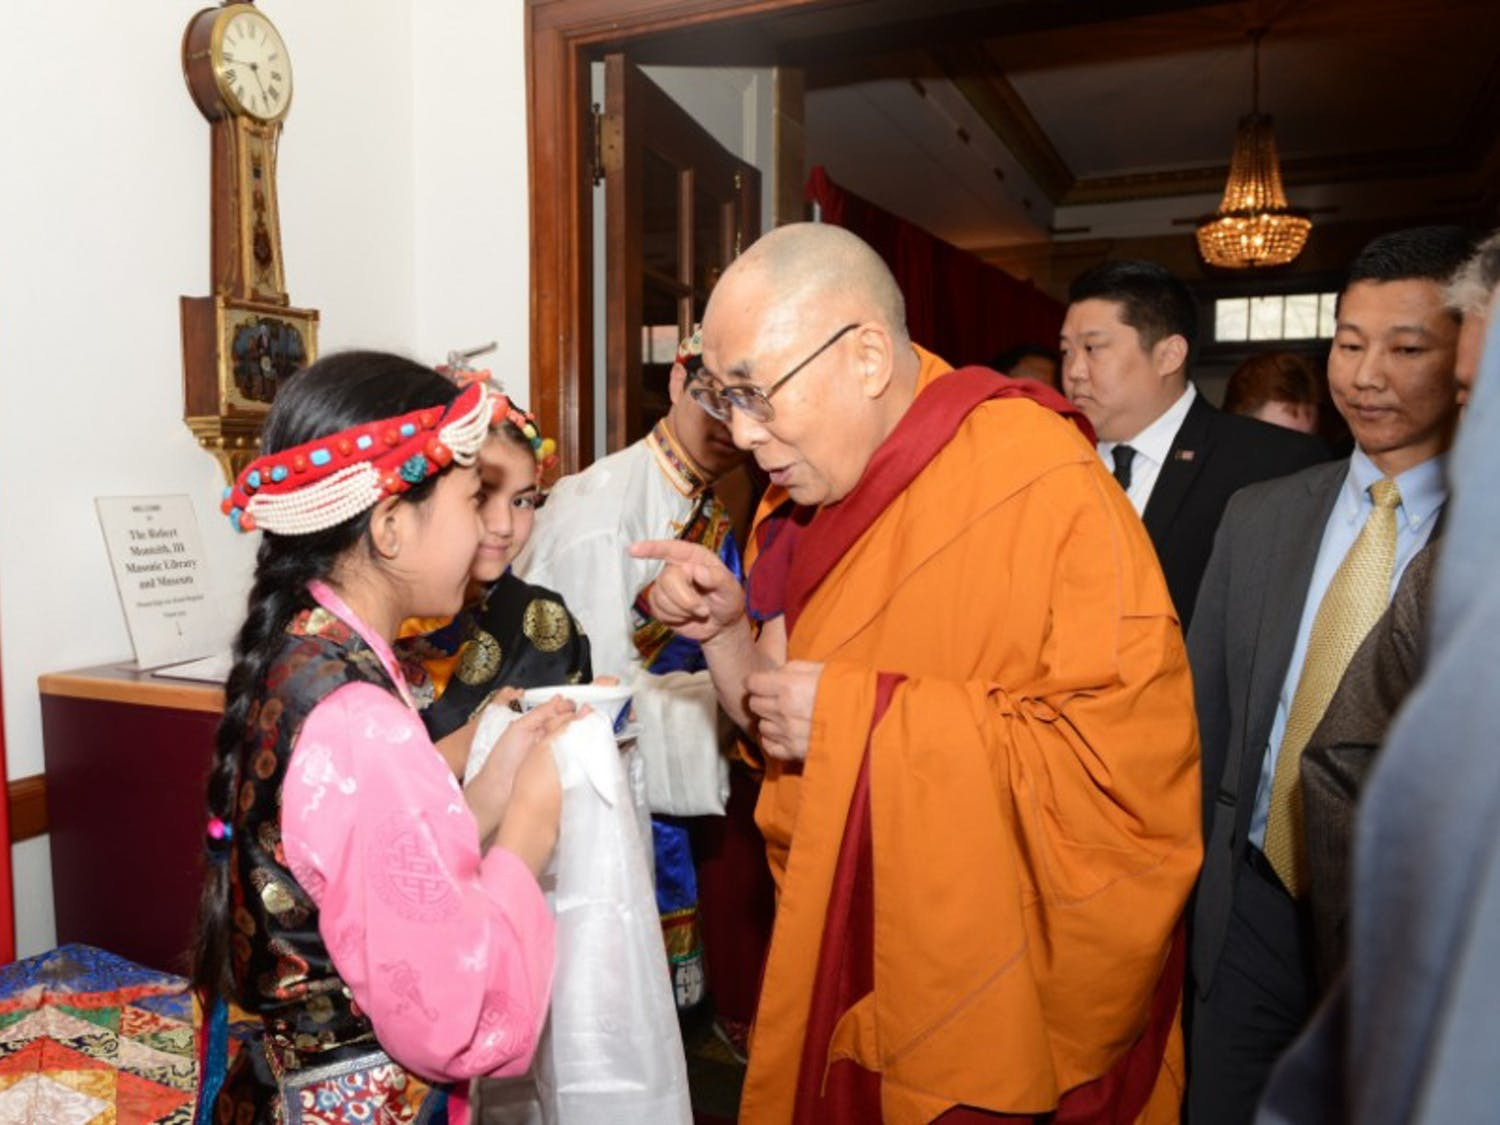 His Holiness the Dalai Lama is making his 10th visit to Madison this week.